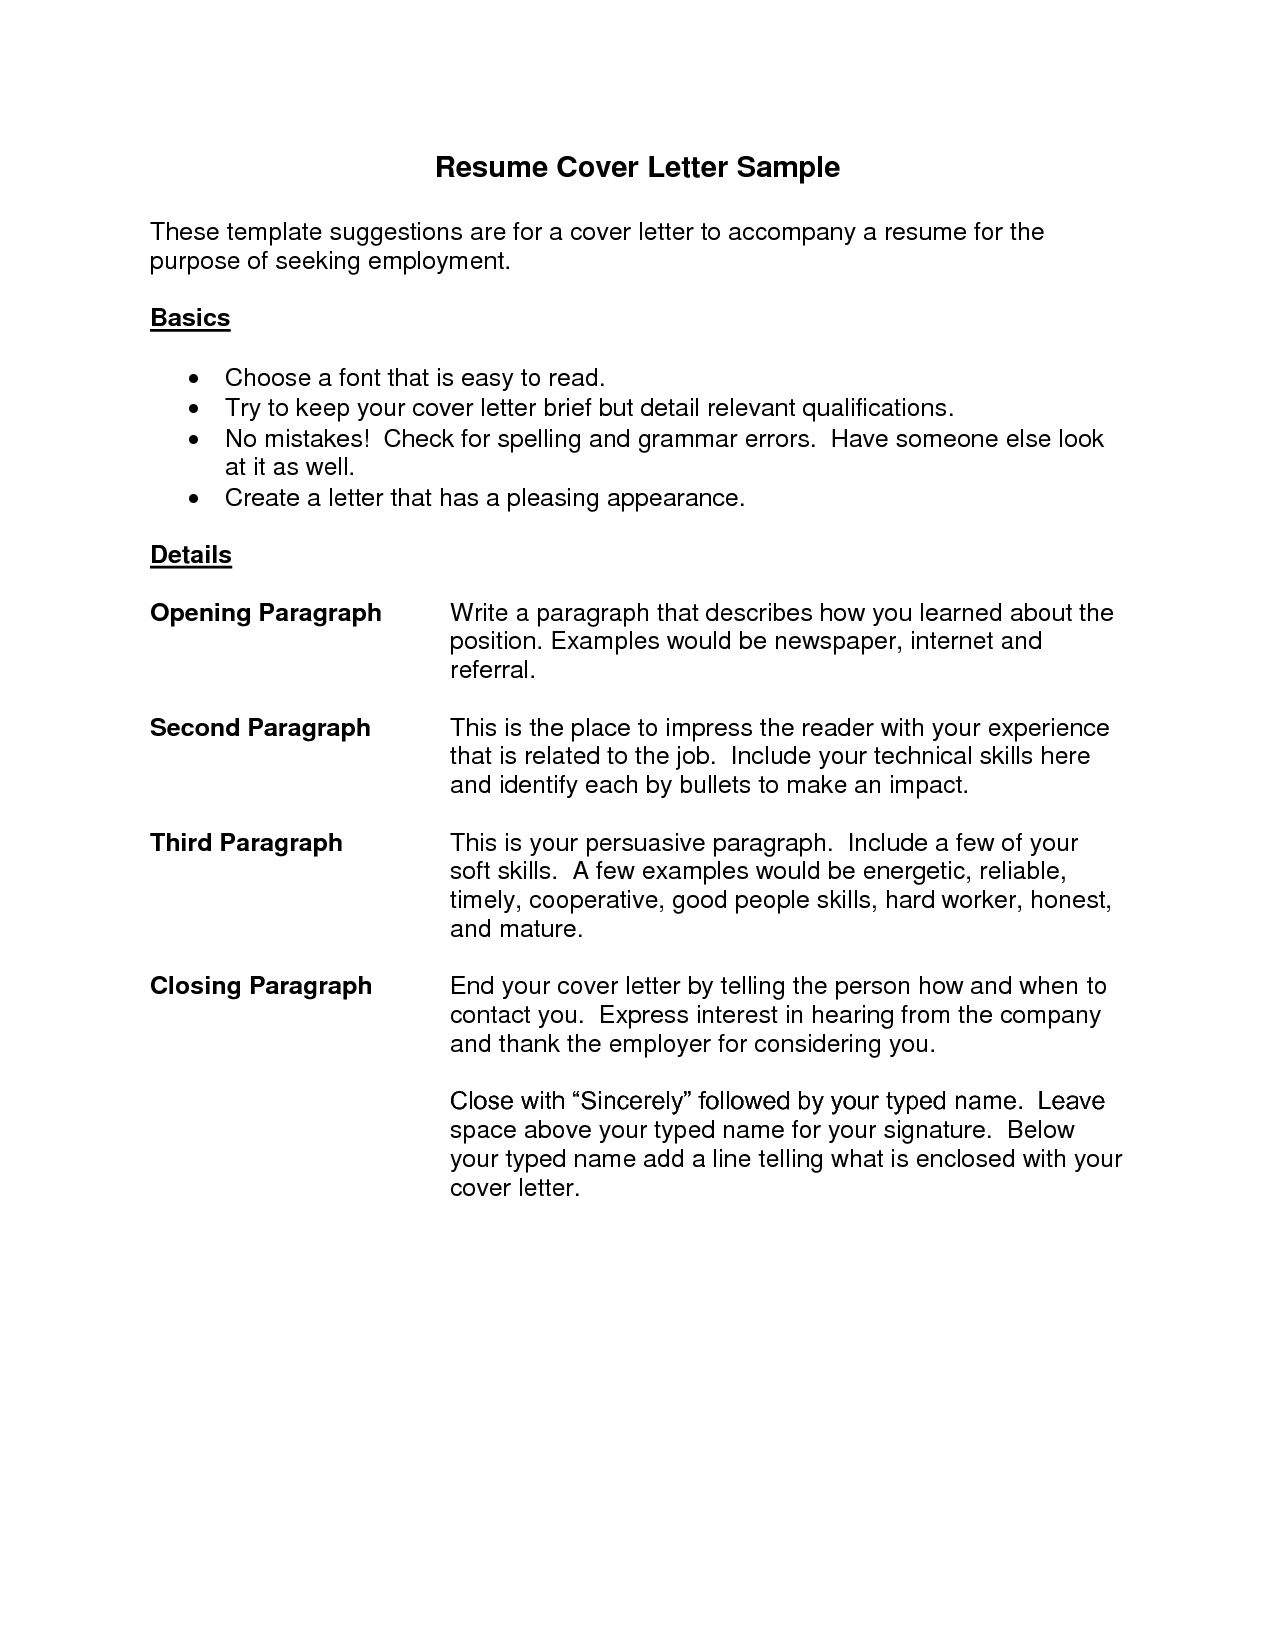 resume letter examples application - Resume Letters Examples